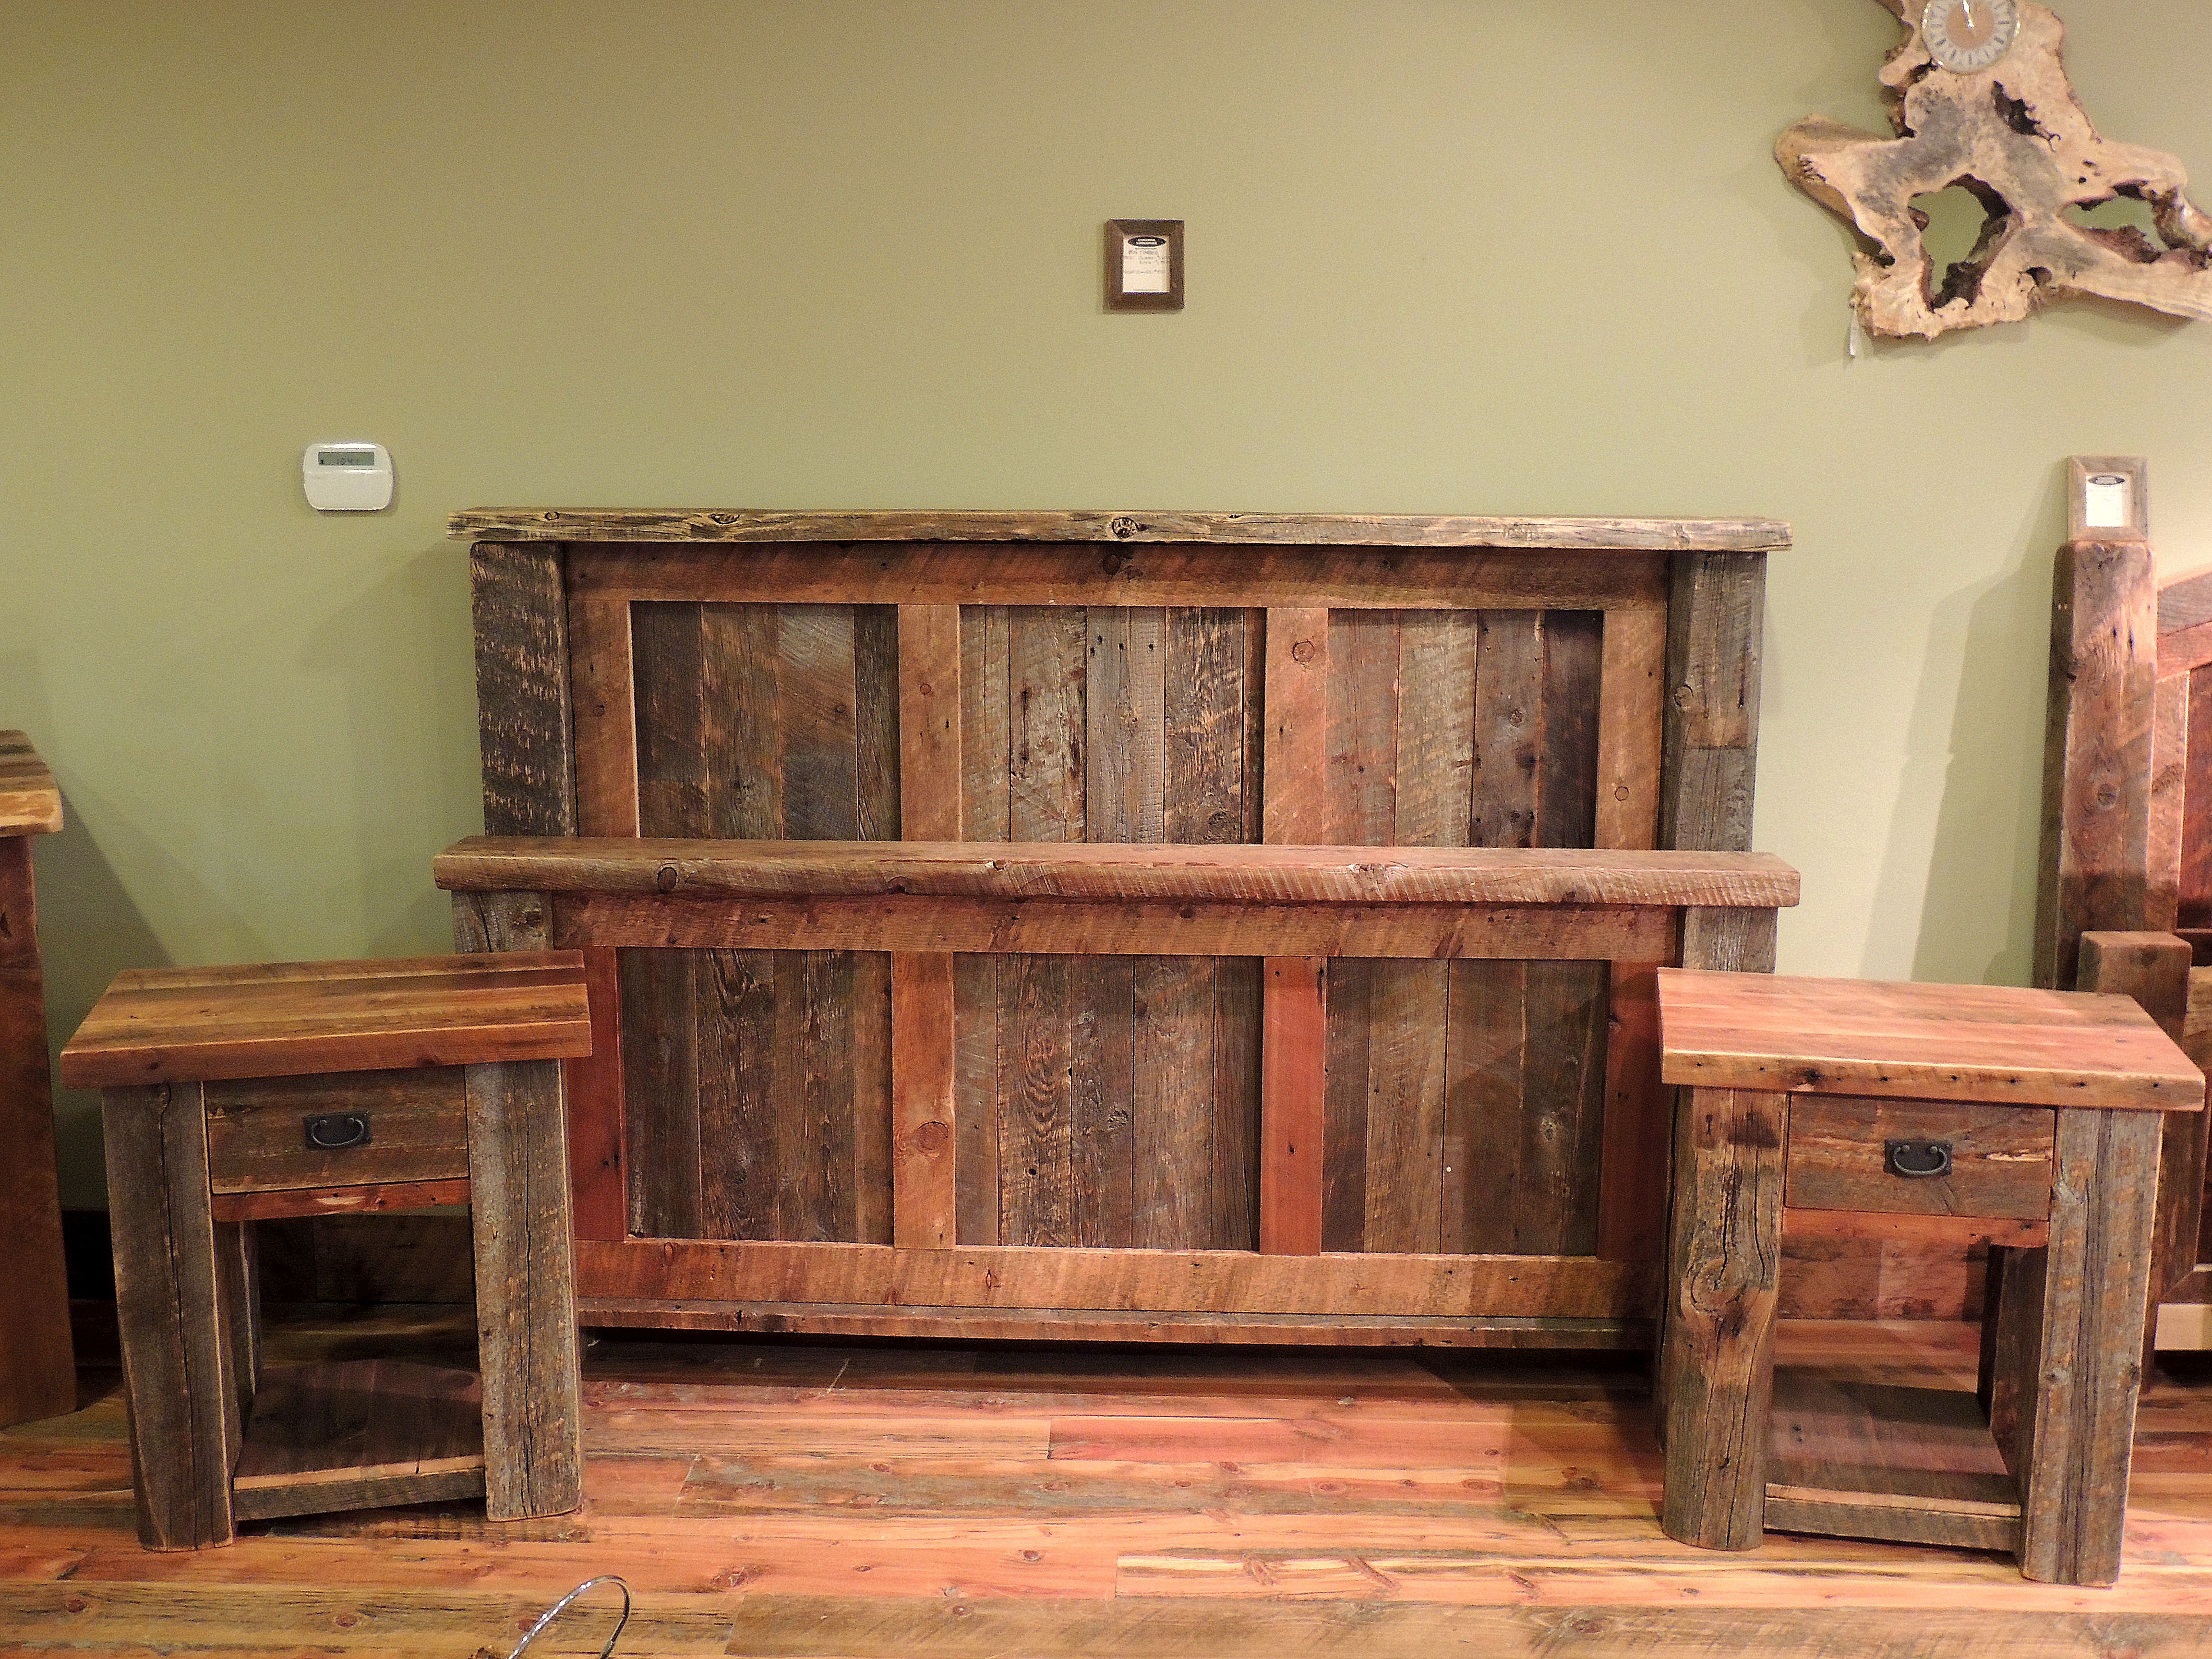 by lonepine lodgepole on barnwood log bedroom furniture pintere